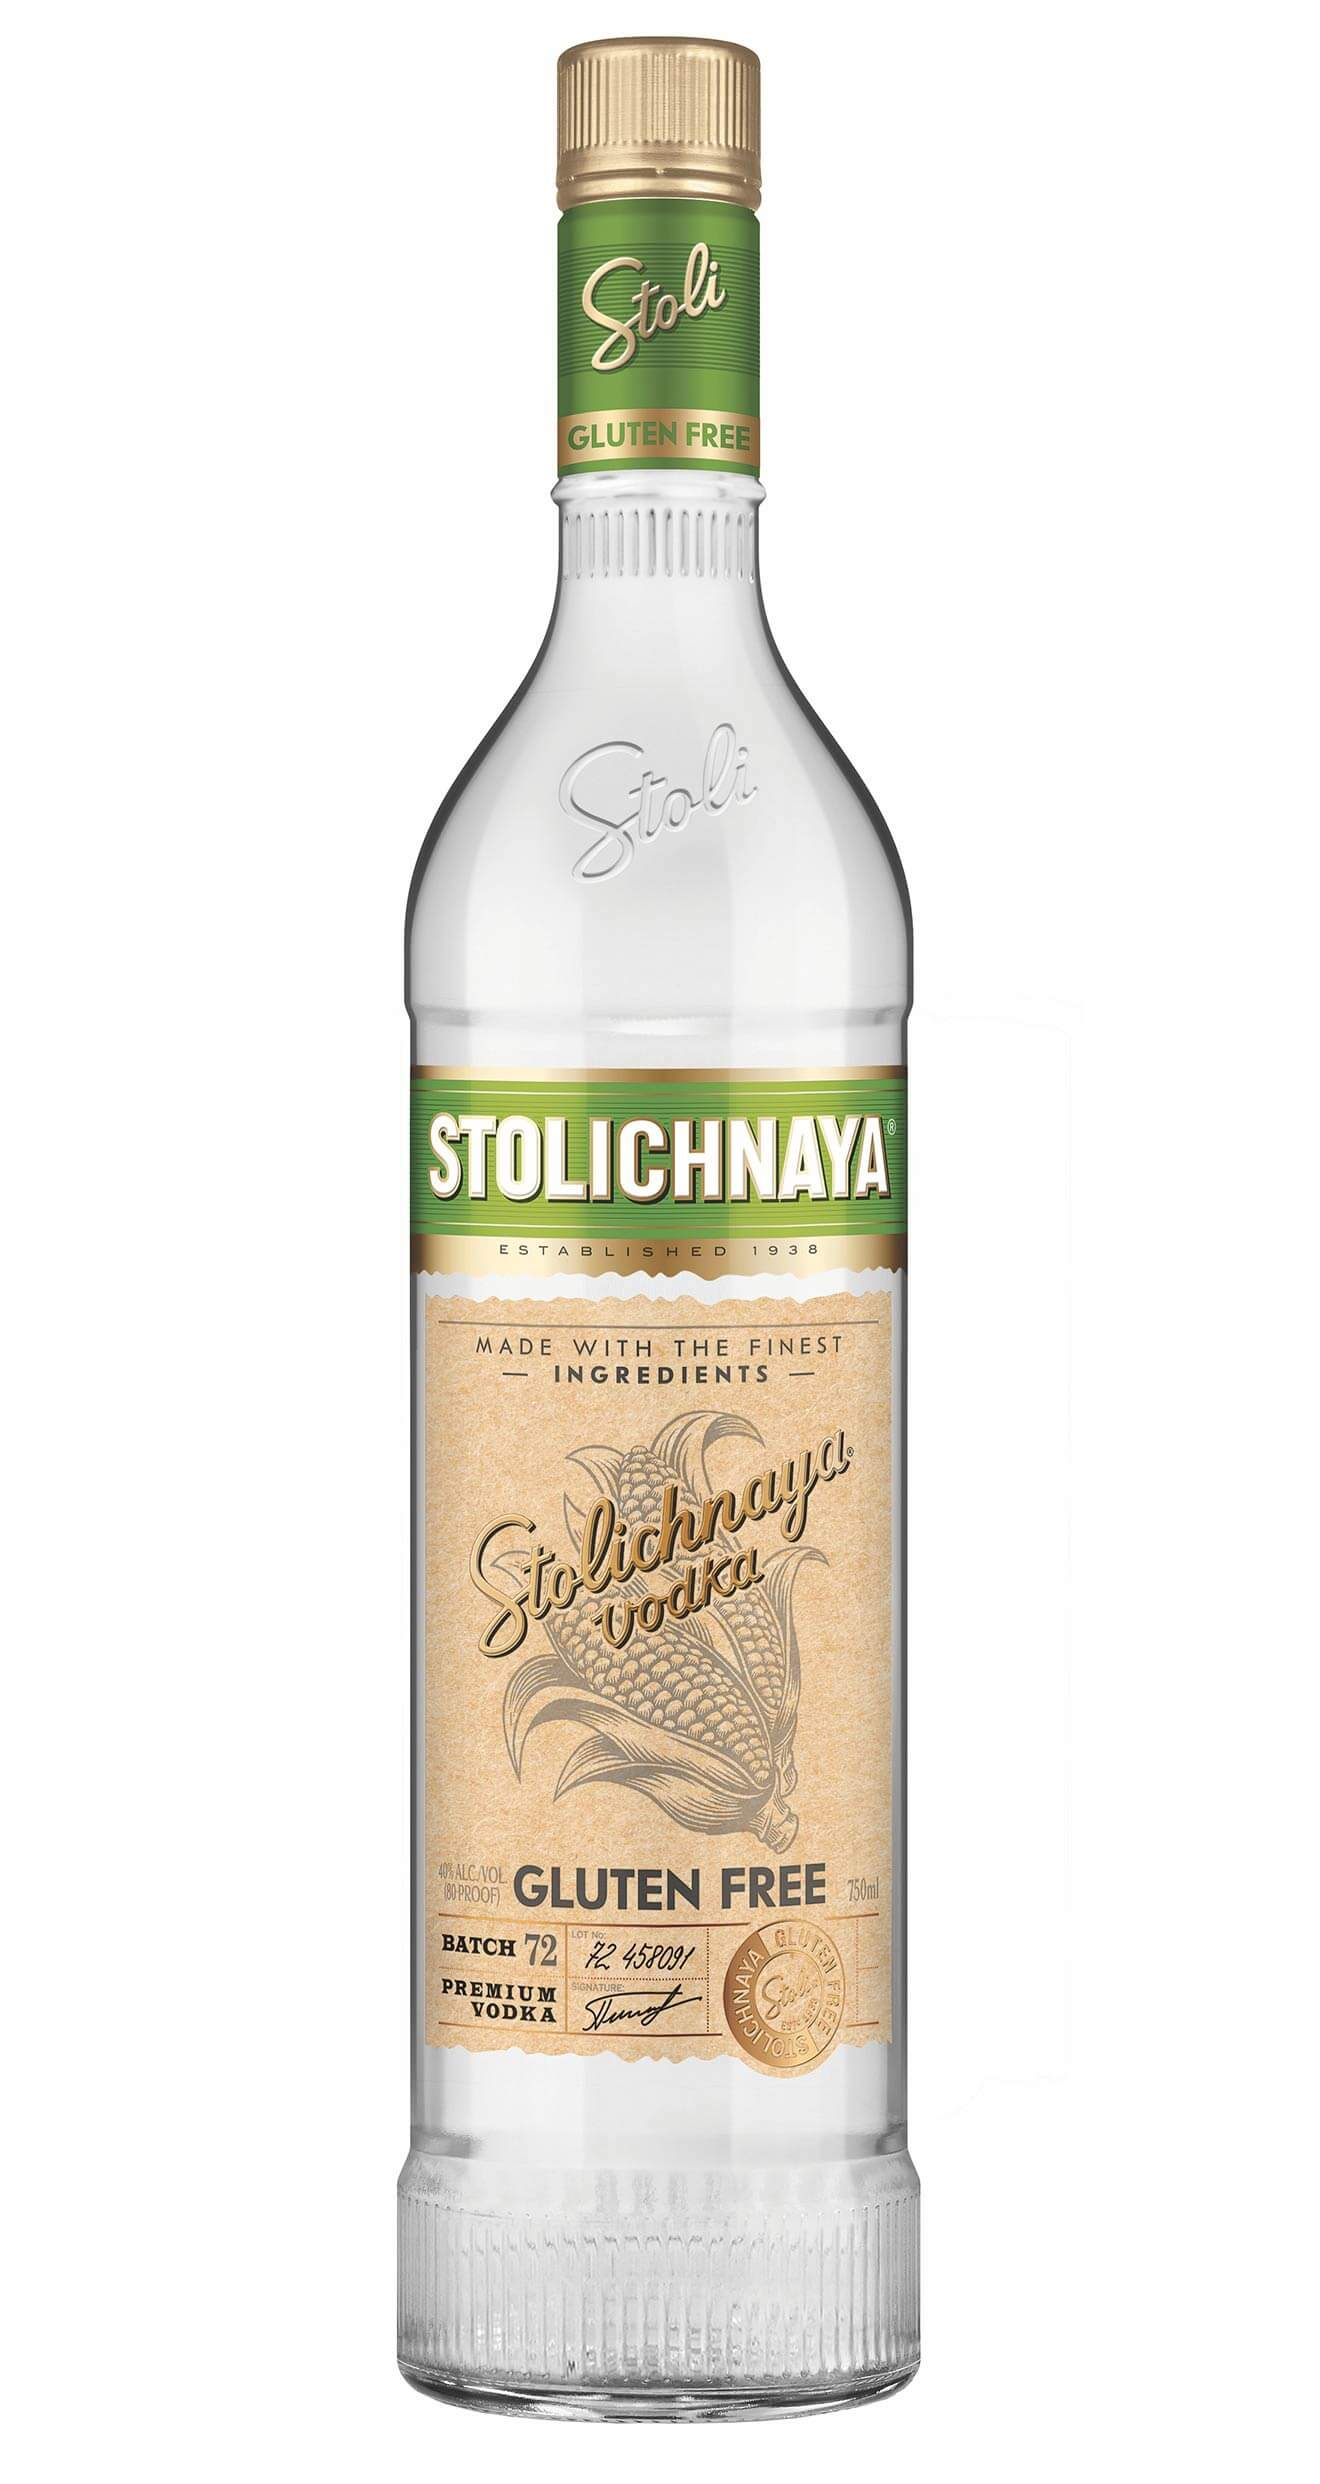 Stoli Gluten Free, featured brands